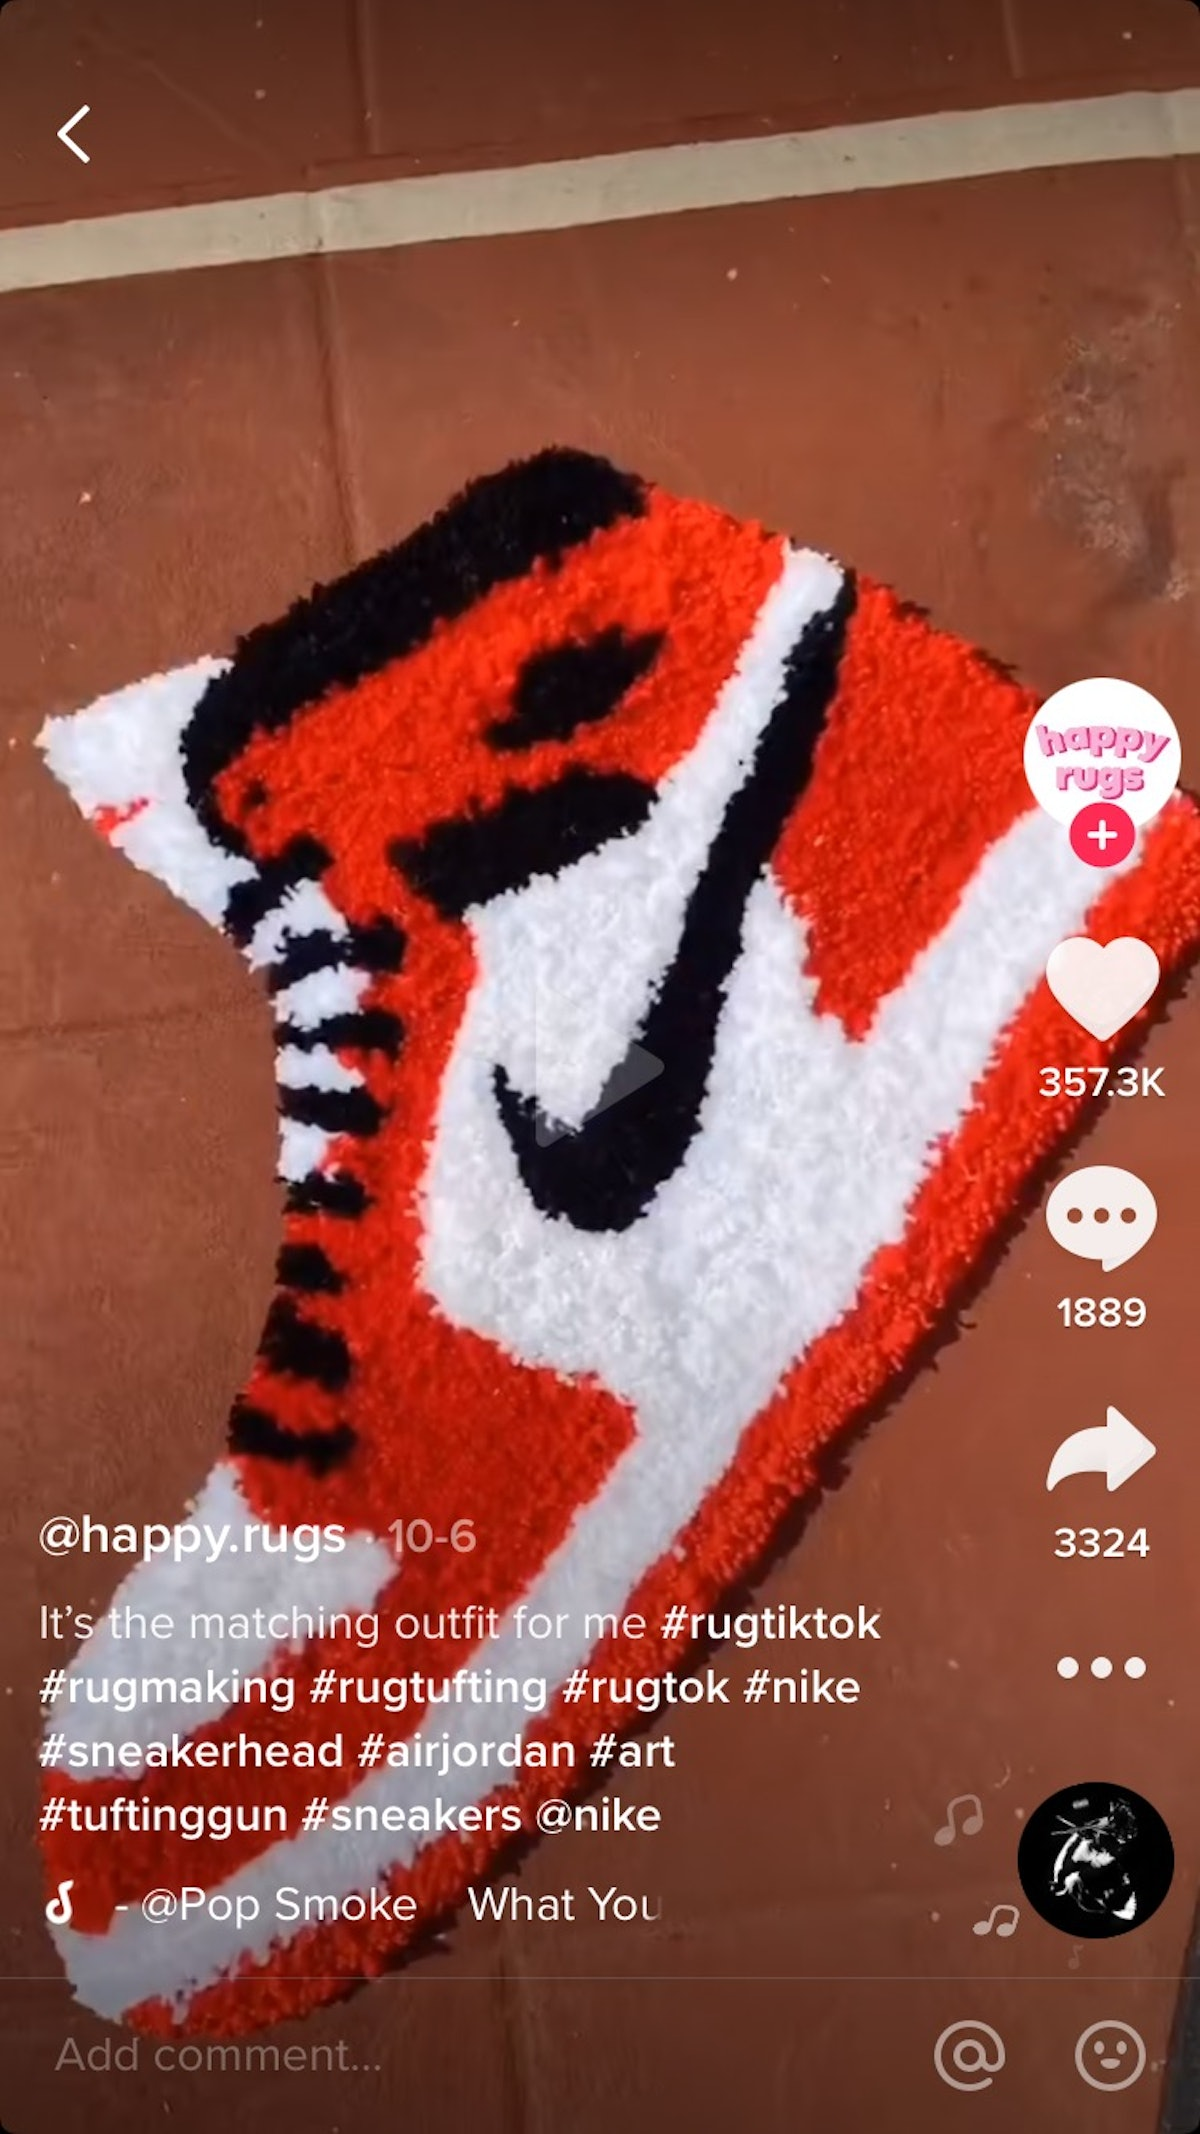 @happy.rugs makes a sneaker shaped rug on TikTok that's perfect for sneaker heads and hypebeasts alike